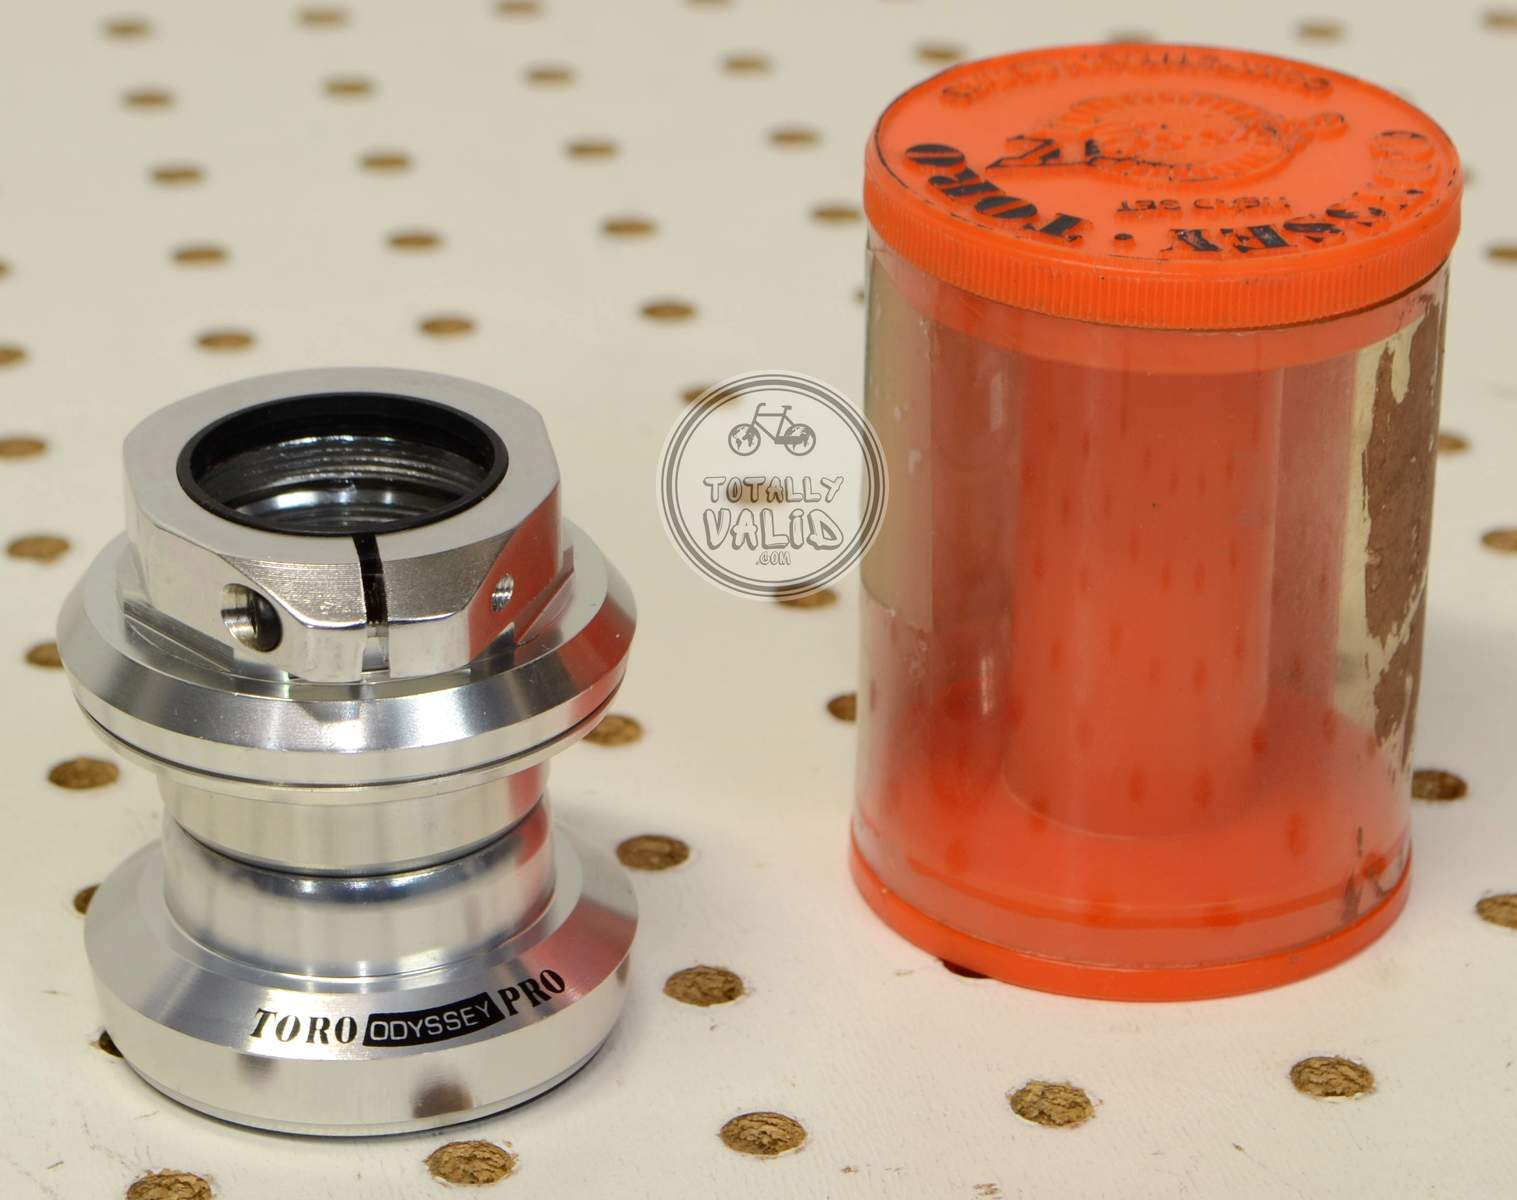 http://uploads.bmxmuseum.com/user-images/17782/odyssey-toro-pro-needle-bearing-headset-os-threaded-vintage-mtb-parts-library.25c3bba33a8.jpg